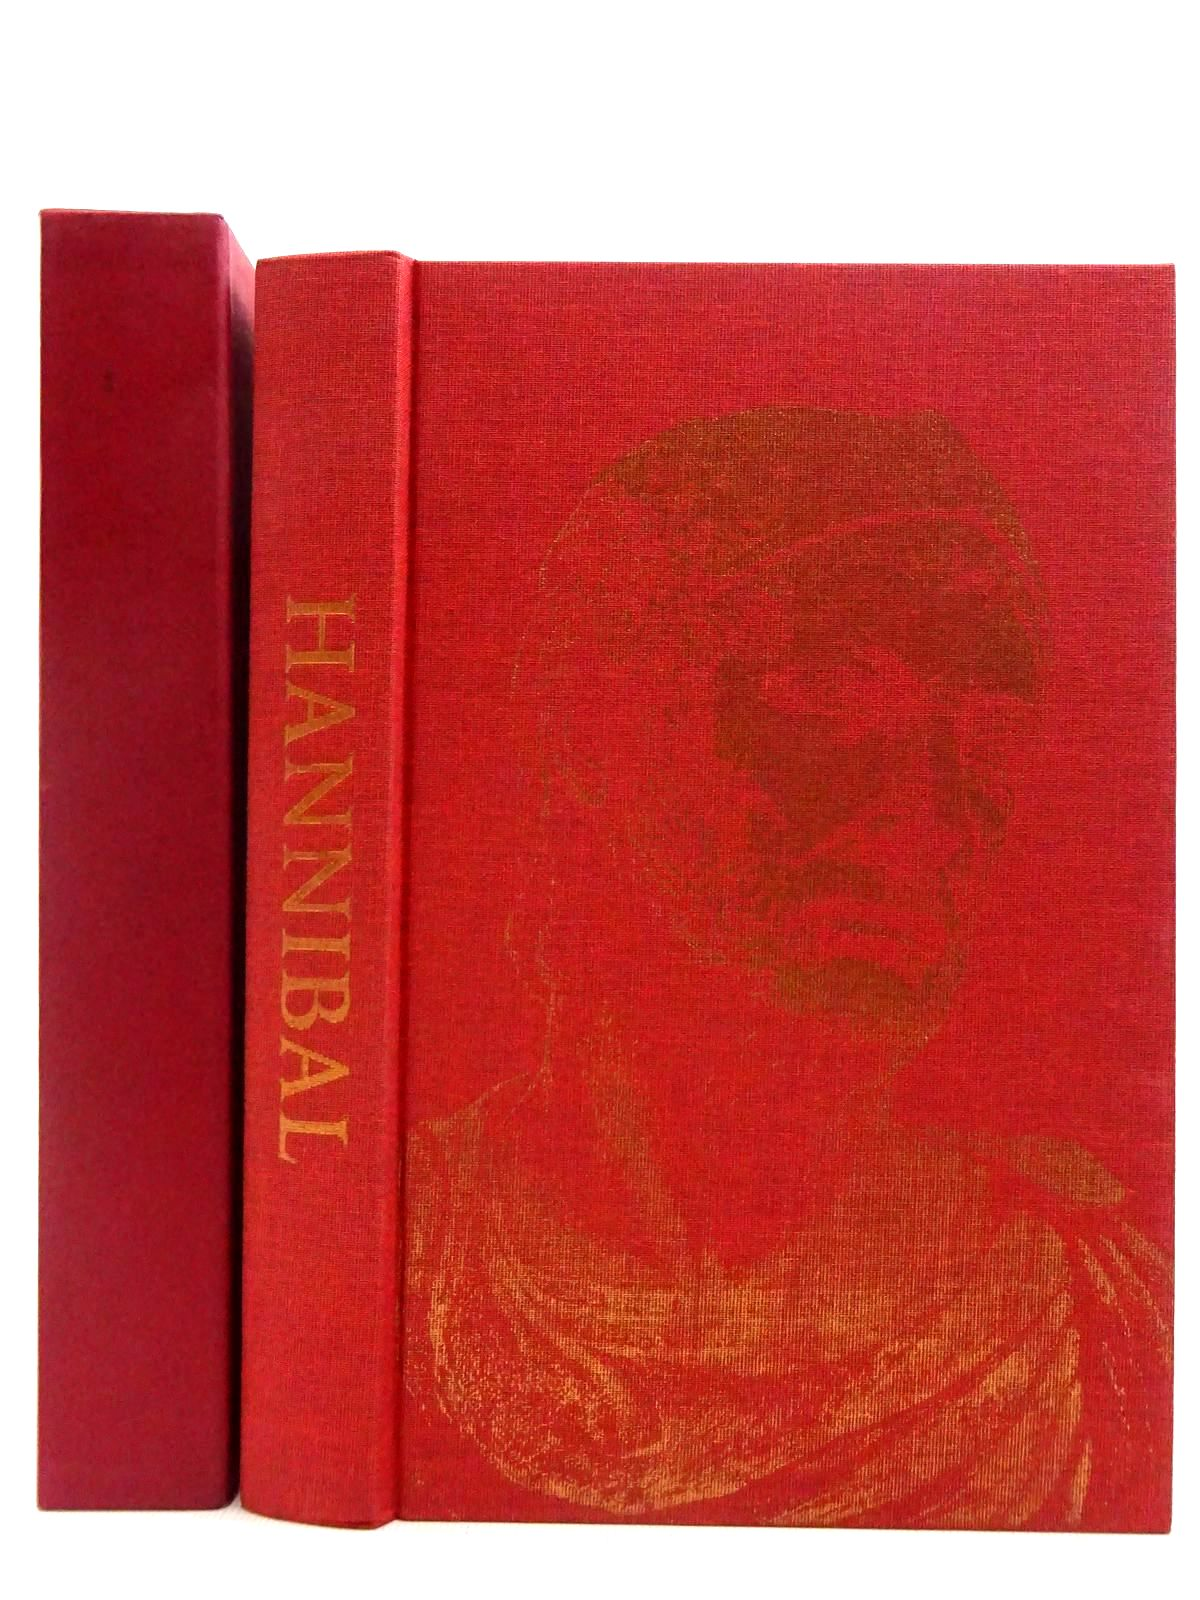 Photo of HANNIBAL written by Bradford, Ernle published by Folio Society (STOCK CODE: 2128752)  for sale by Stella & Rose's Books